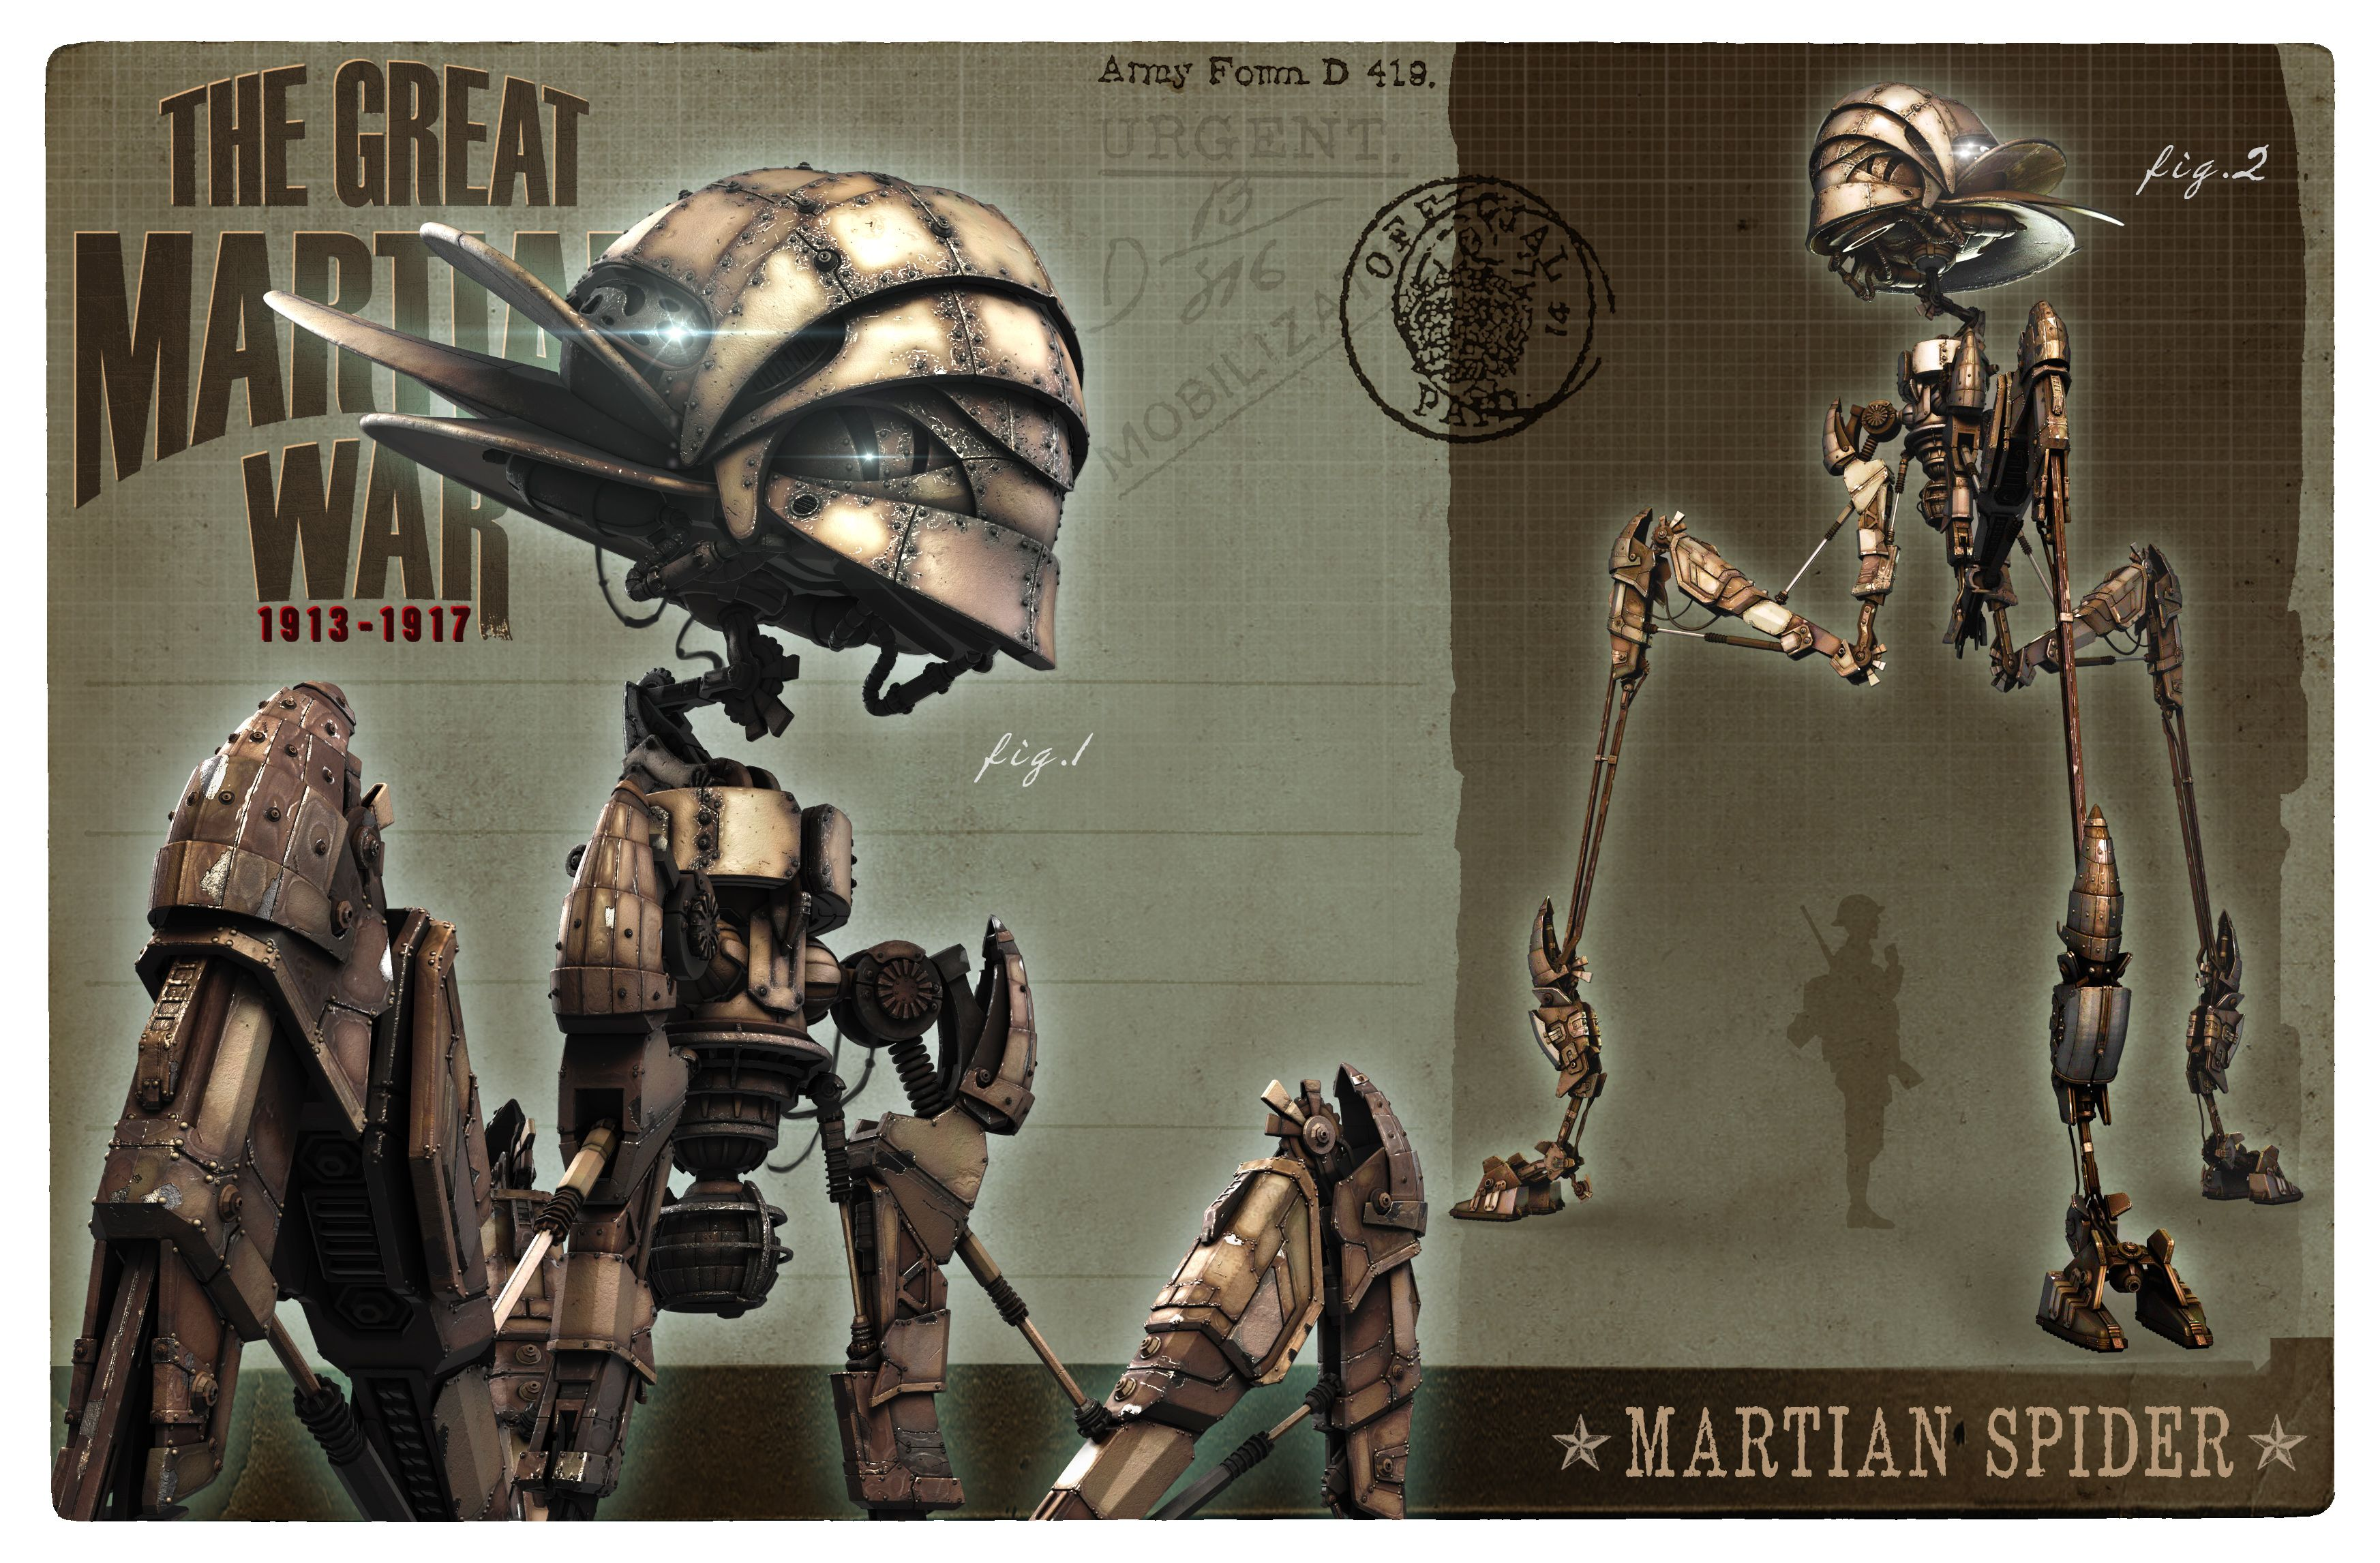 The Great Martian War - Spider Plazmadesign.co.uk | The ...